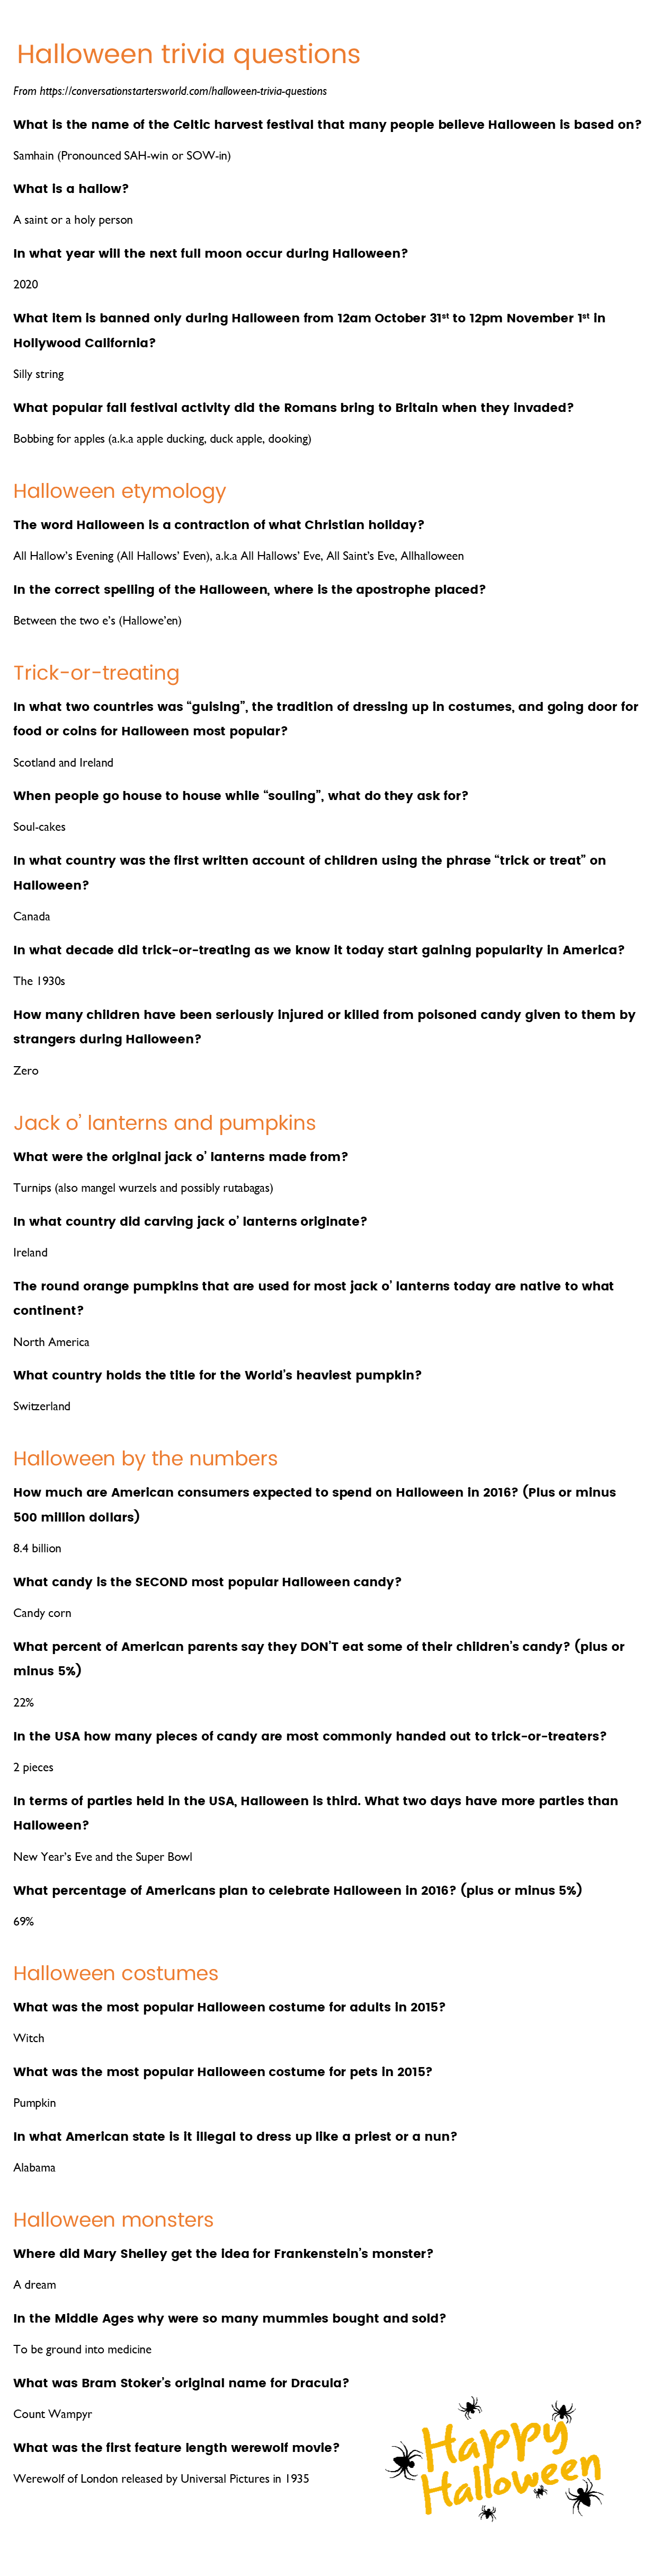 photograph about St Patrick Day Trivia Questions and Answers Printable known as 29 Strenuous Halloween Trivia Issues - How quite a few can on your own